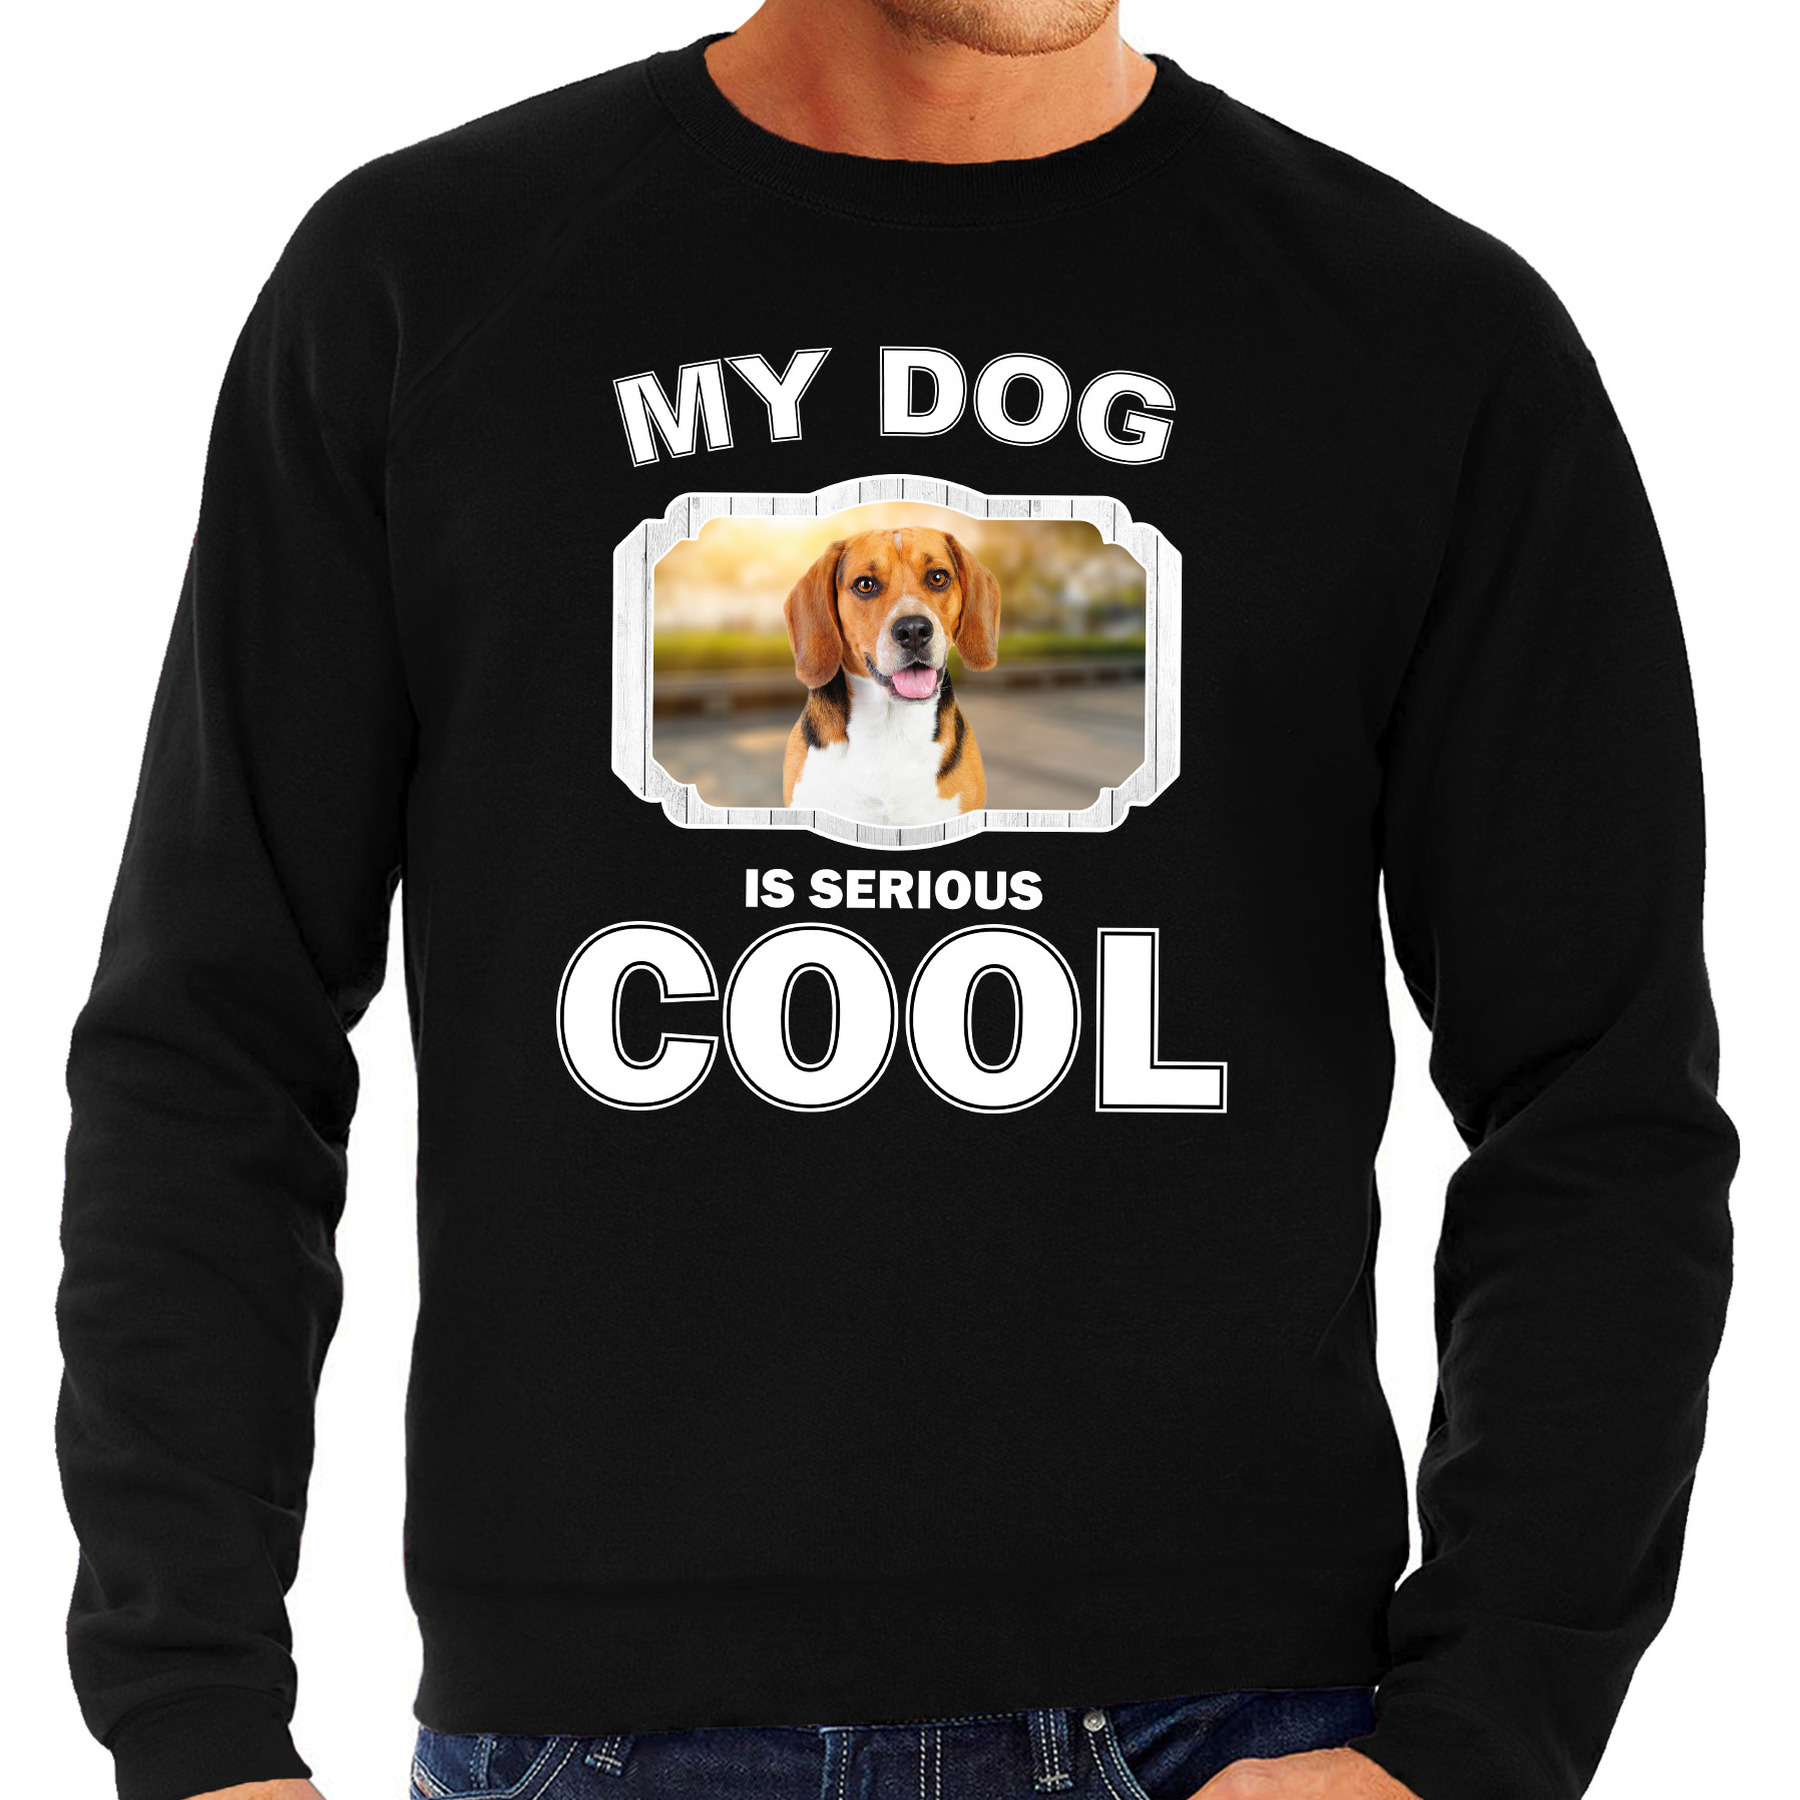 Beagle honden sweater - trui my dog is serious cool zwart voor heren